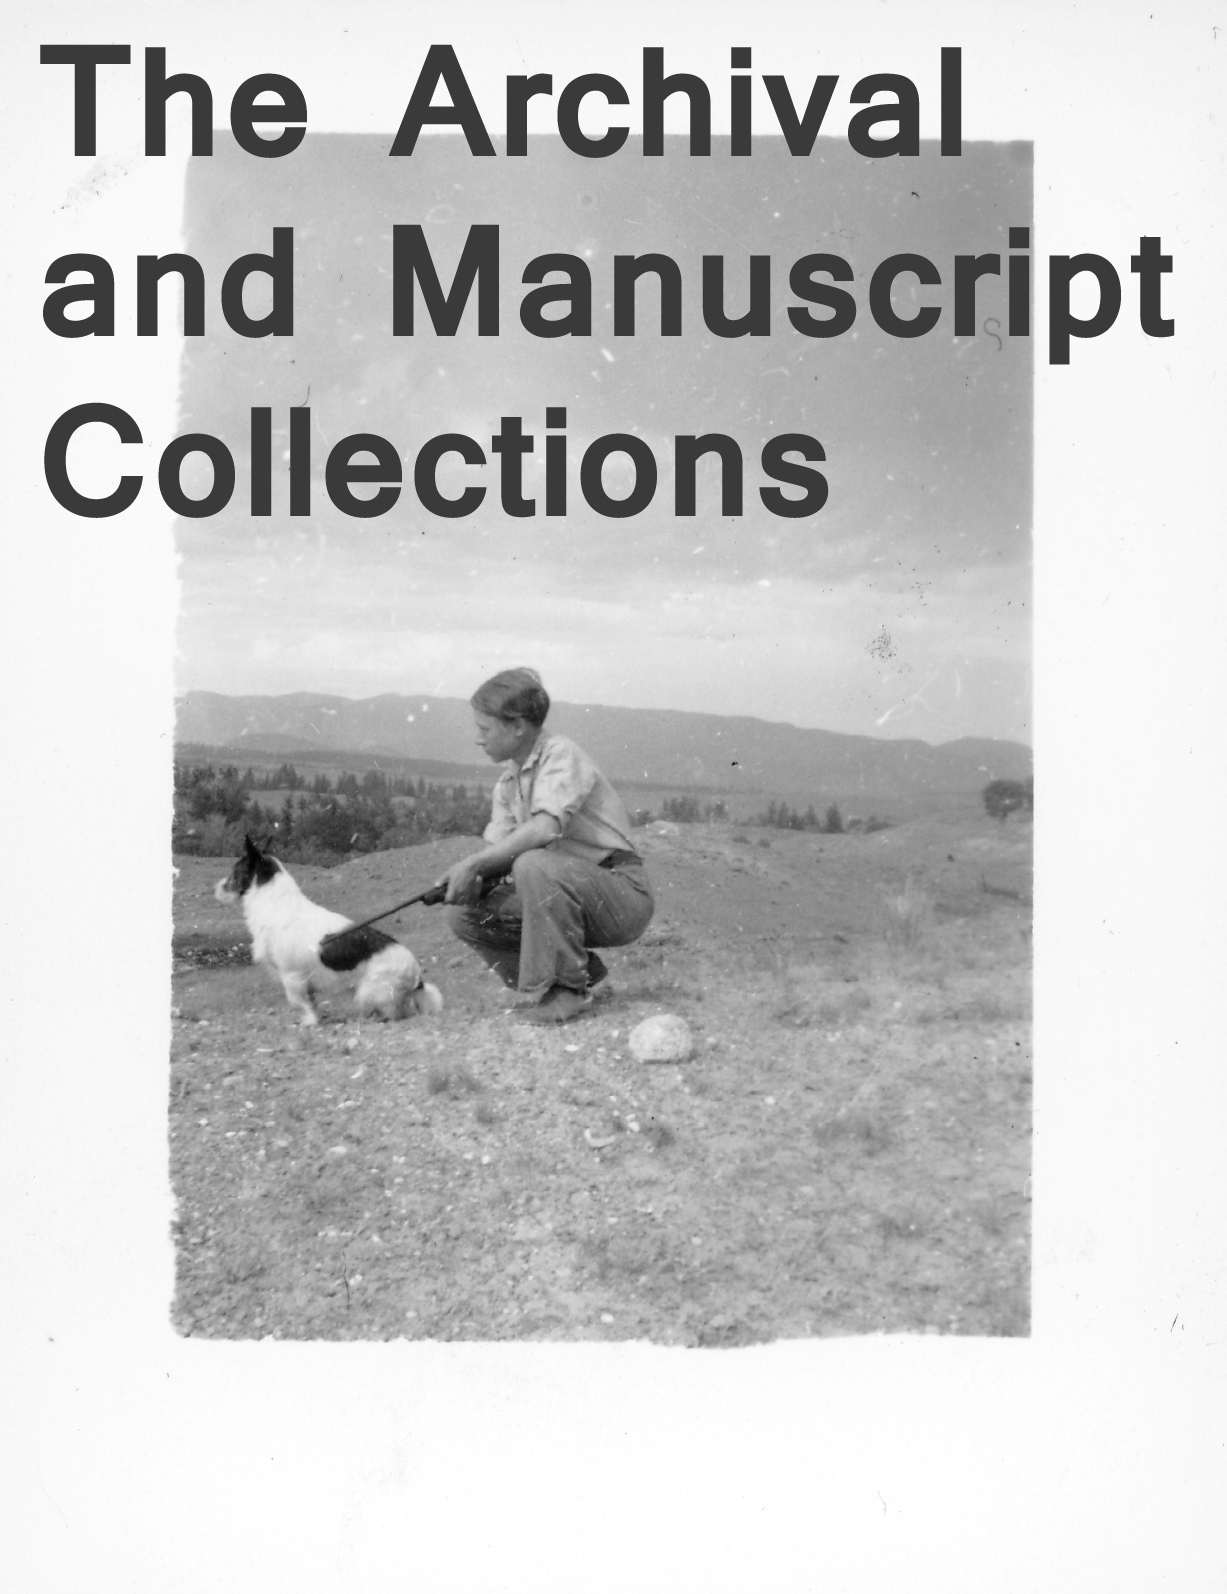 Archival and Manuscript Collections